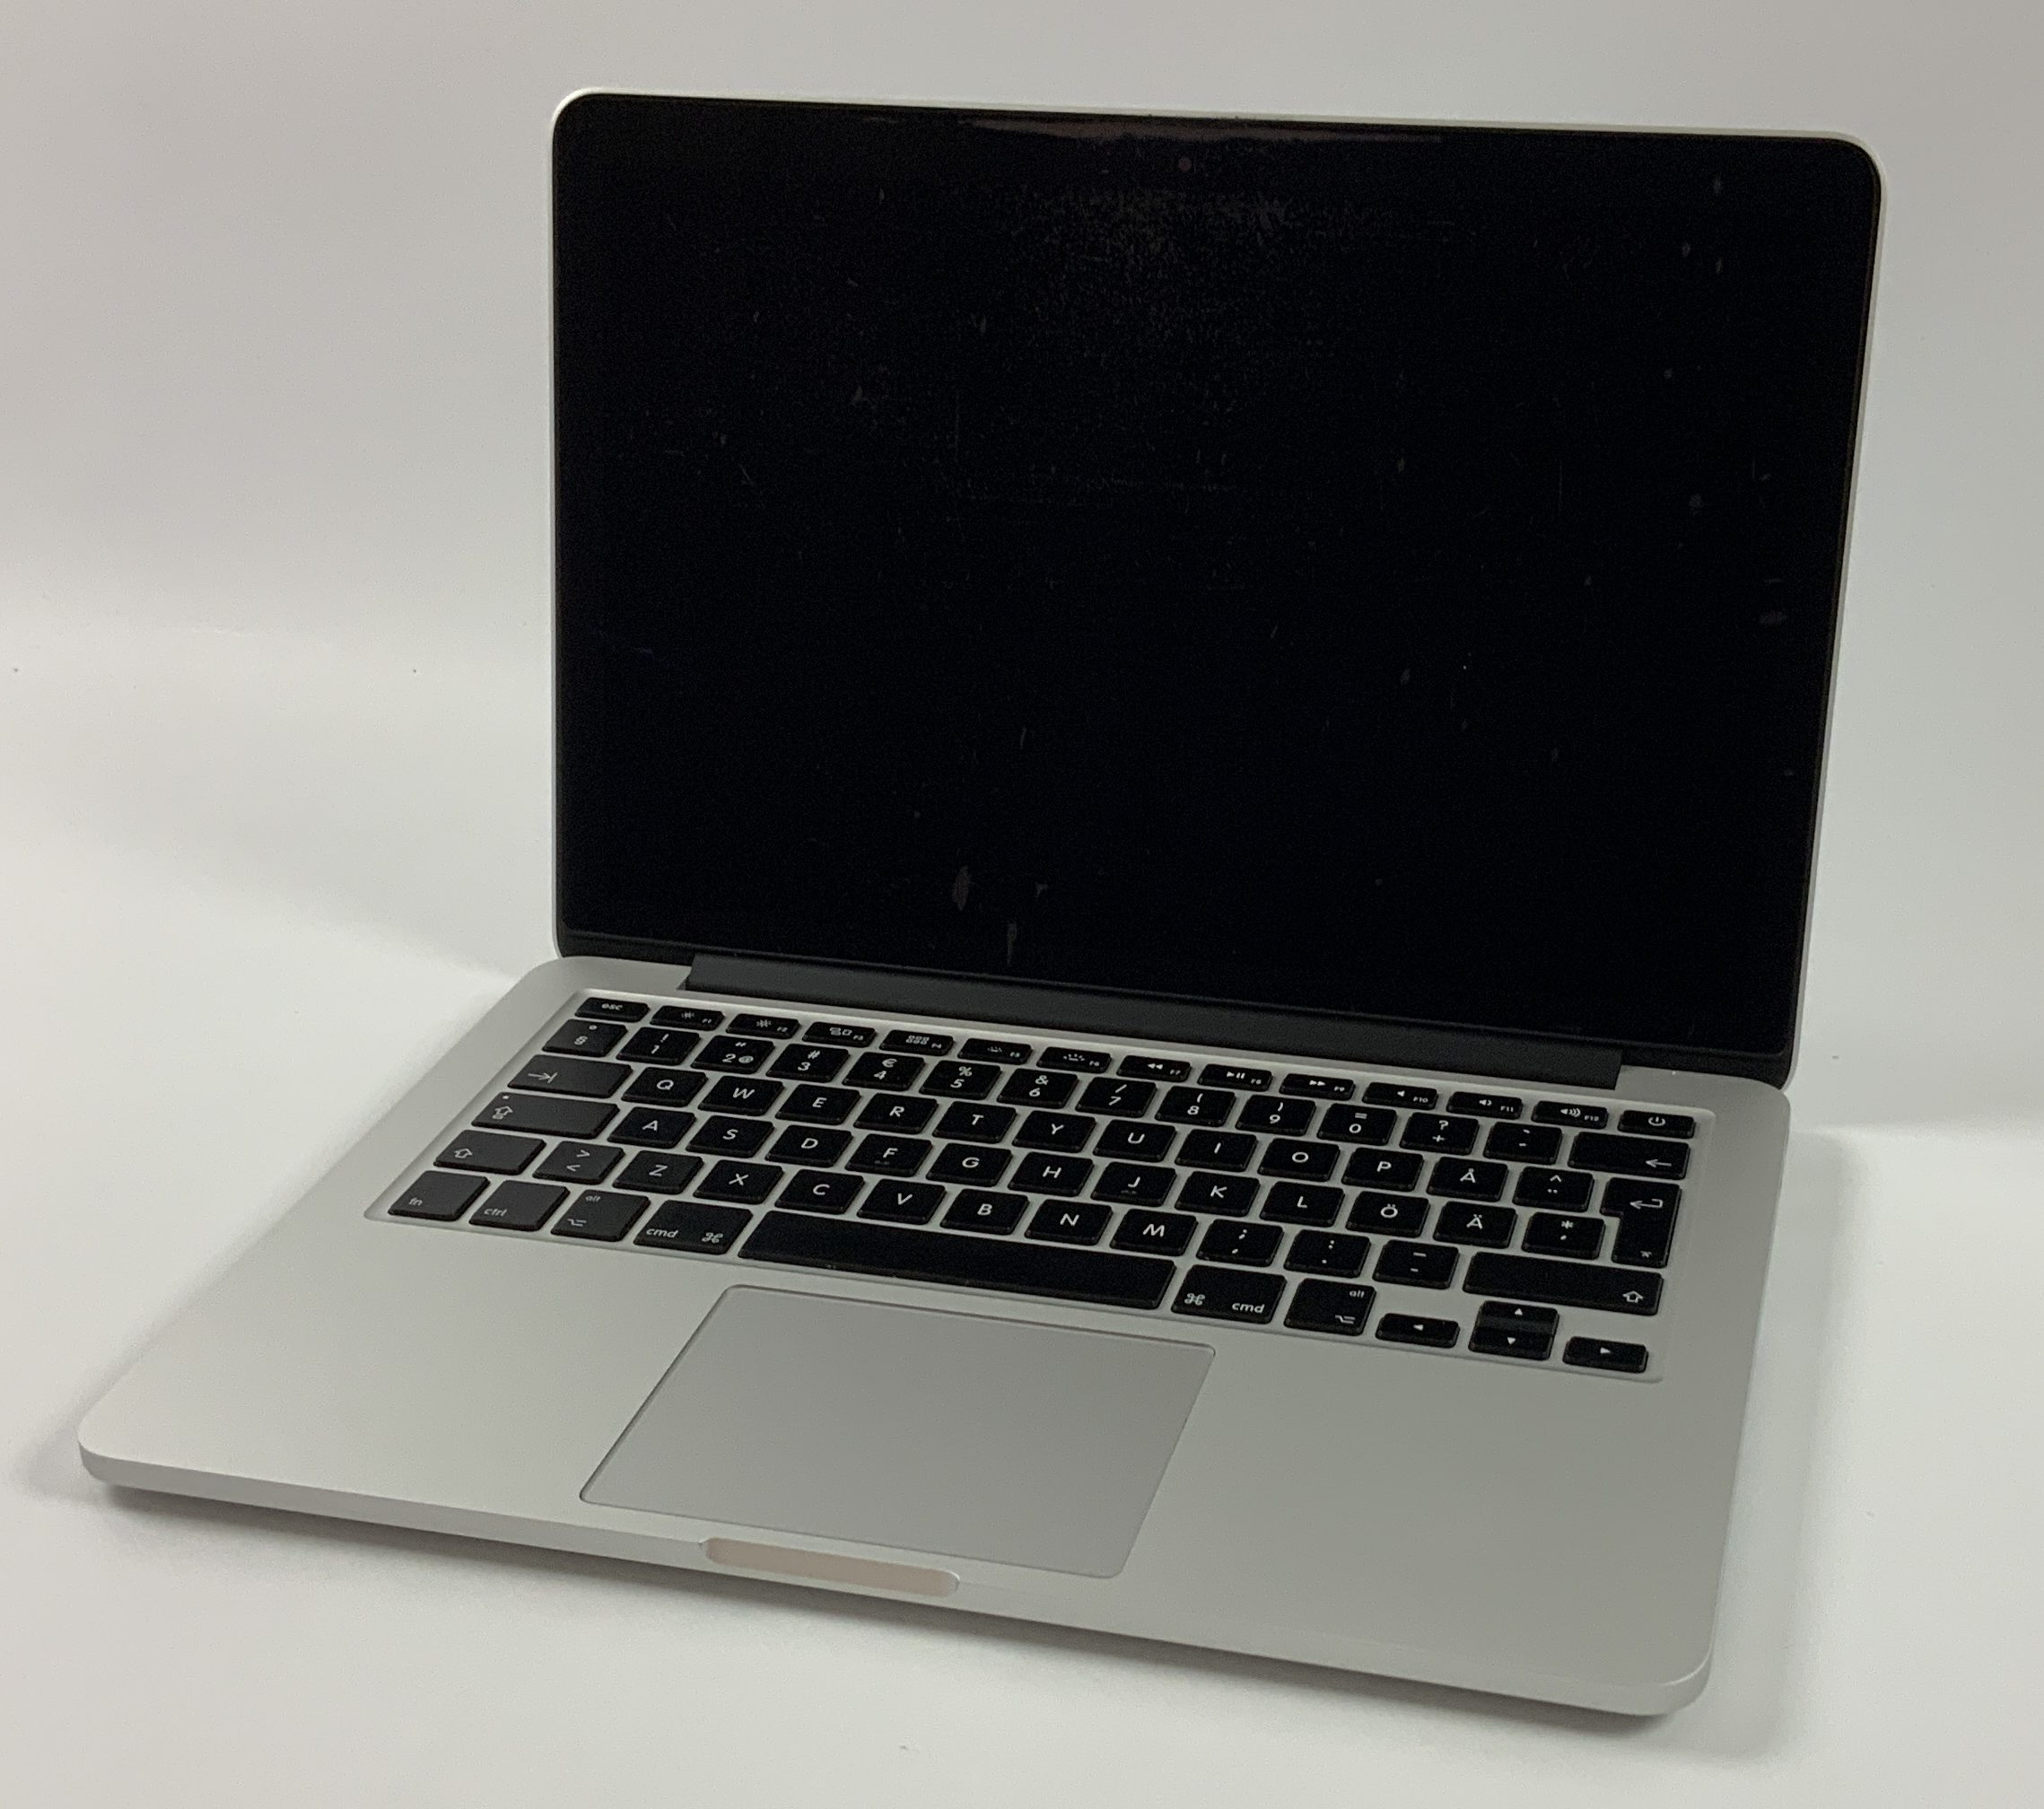 "MacBook Pro Retina 13"" Early 2015 (Intel Core i5 2.7 GHz 8 GB RAM 256 GB SSD), Intel Core i5 2.7 GHz, 8 GB RAM, 256 GB SSD, Kuva 1"